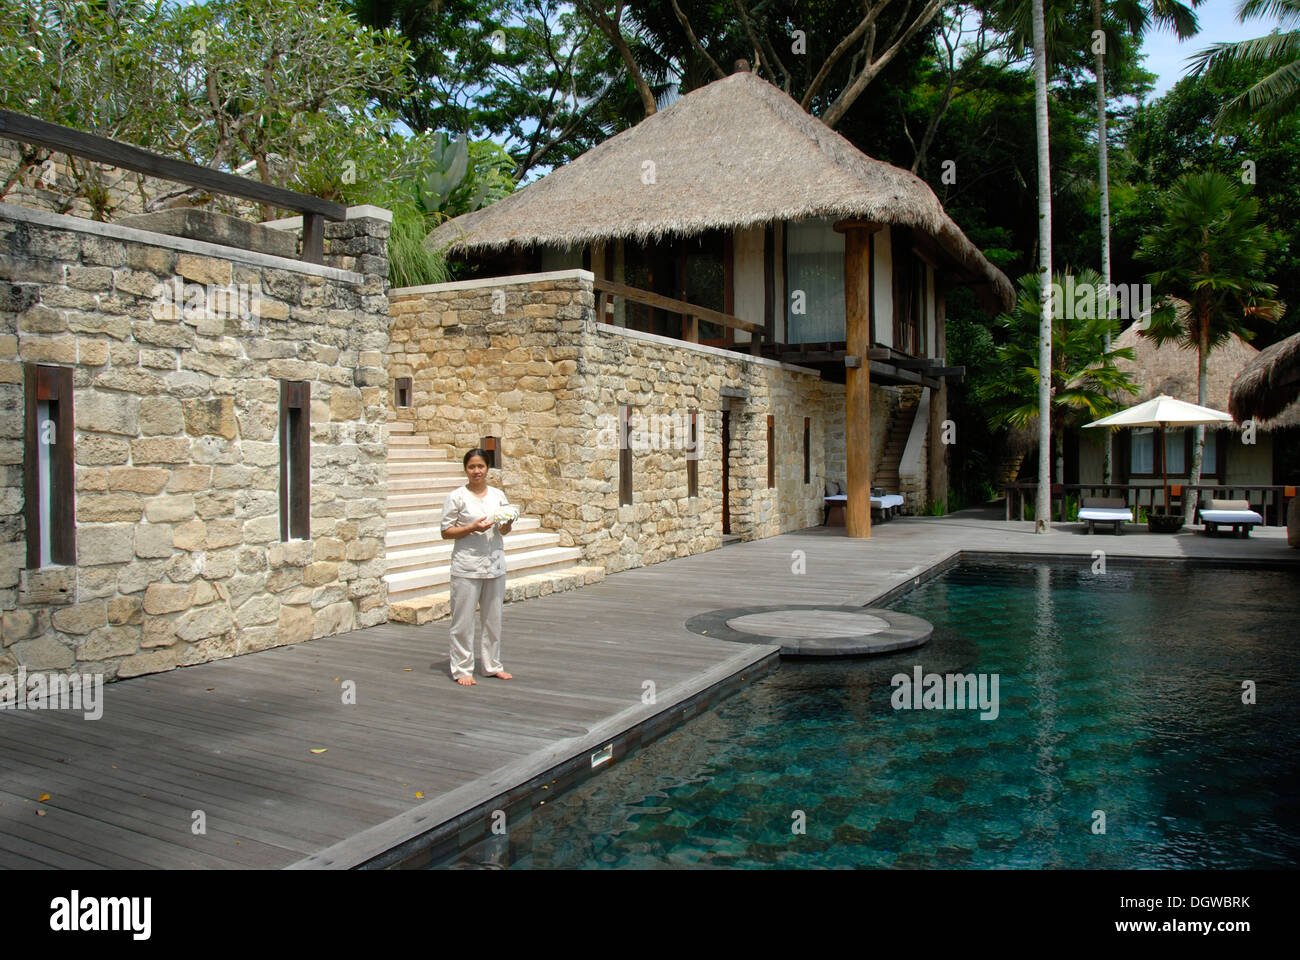 Hotel, pool area of a classy lodge, Como Shambhala Resort in Ubud, Bali, Indonesia, Southeast Asia, Asia - Stock Image